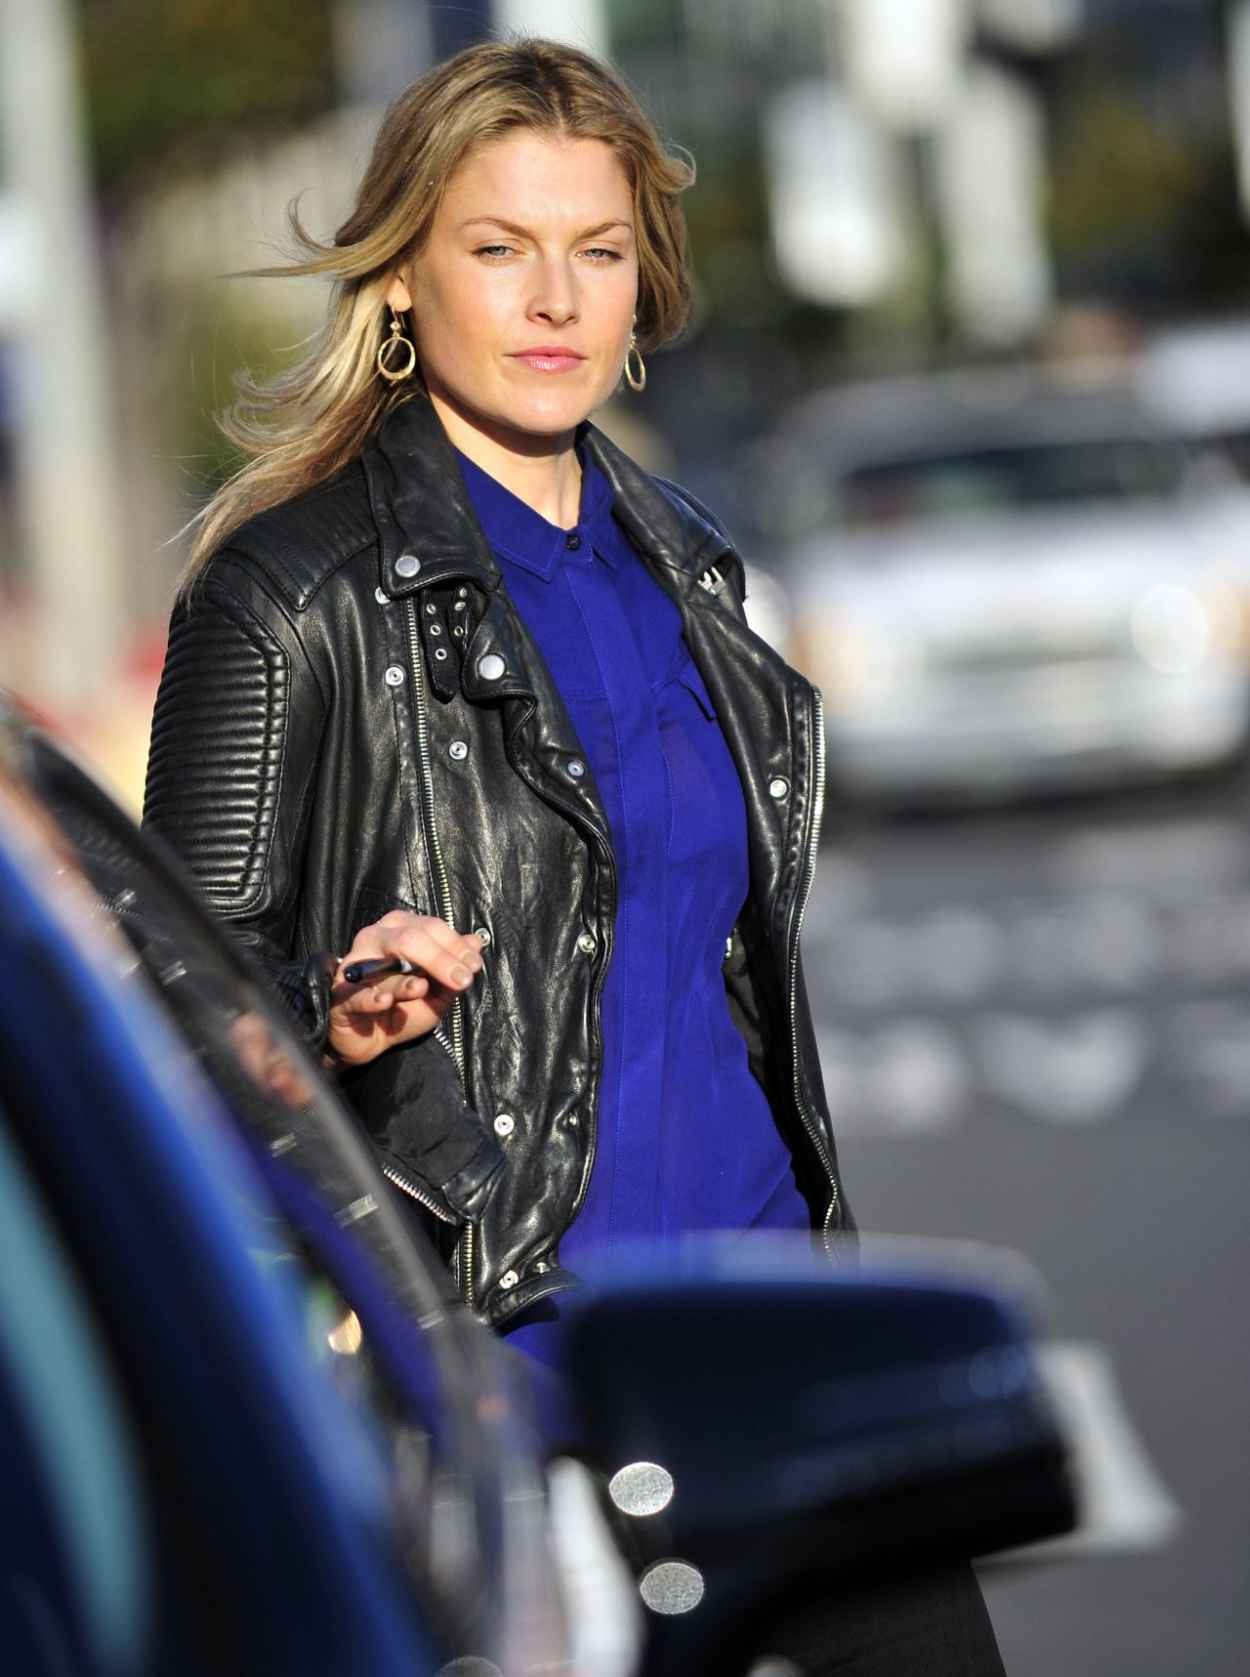 Ali Larter Street Style - Los Angeles - December 2015-1